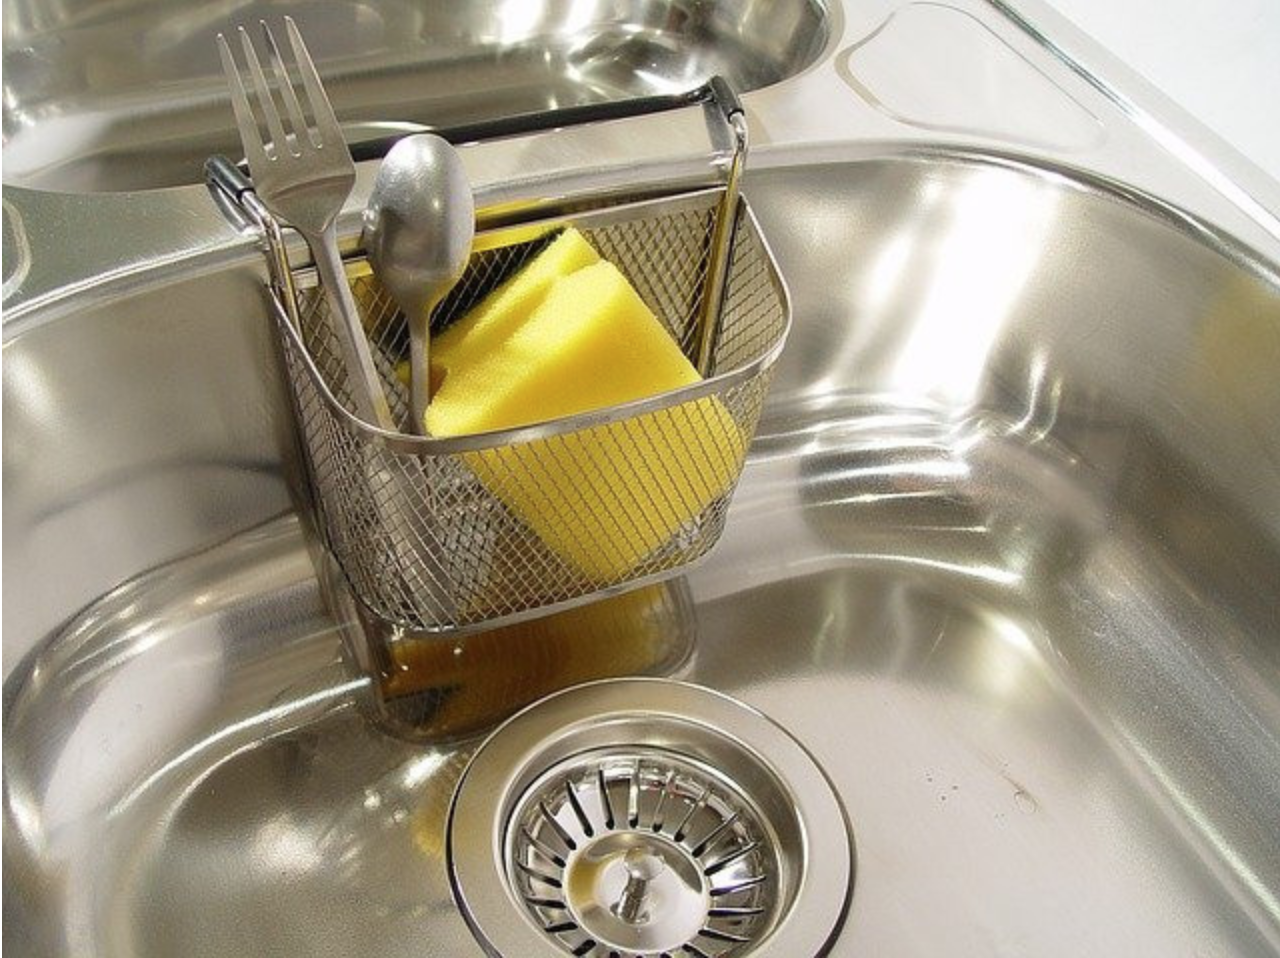 Why Does My Kitchen Sink Smell Like Rotten Eggs? - Kitchen sink